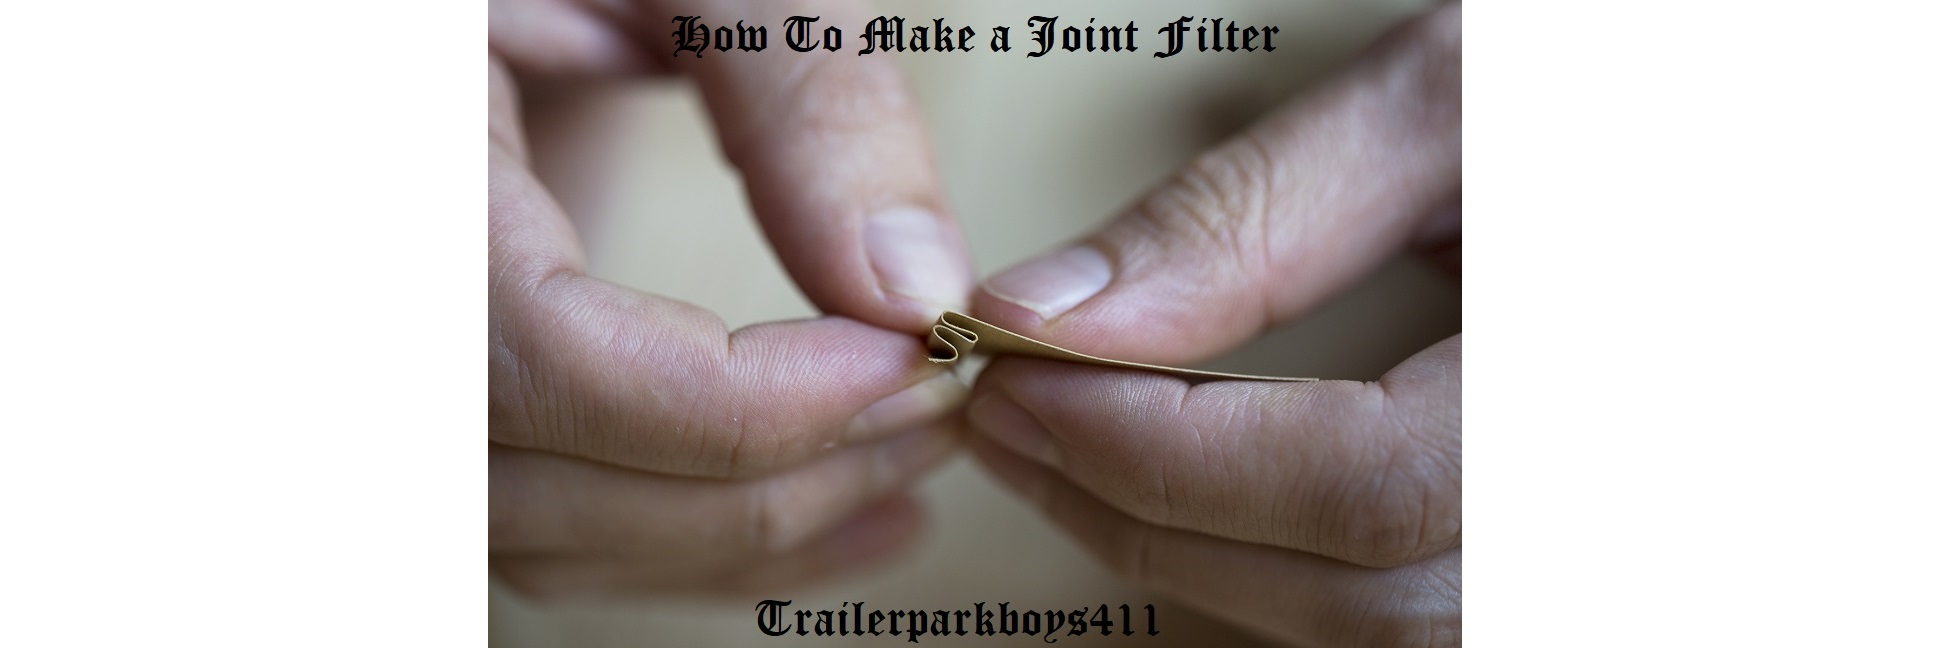 How To Make a Joint Filter